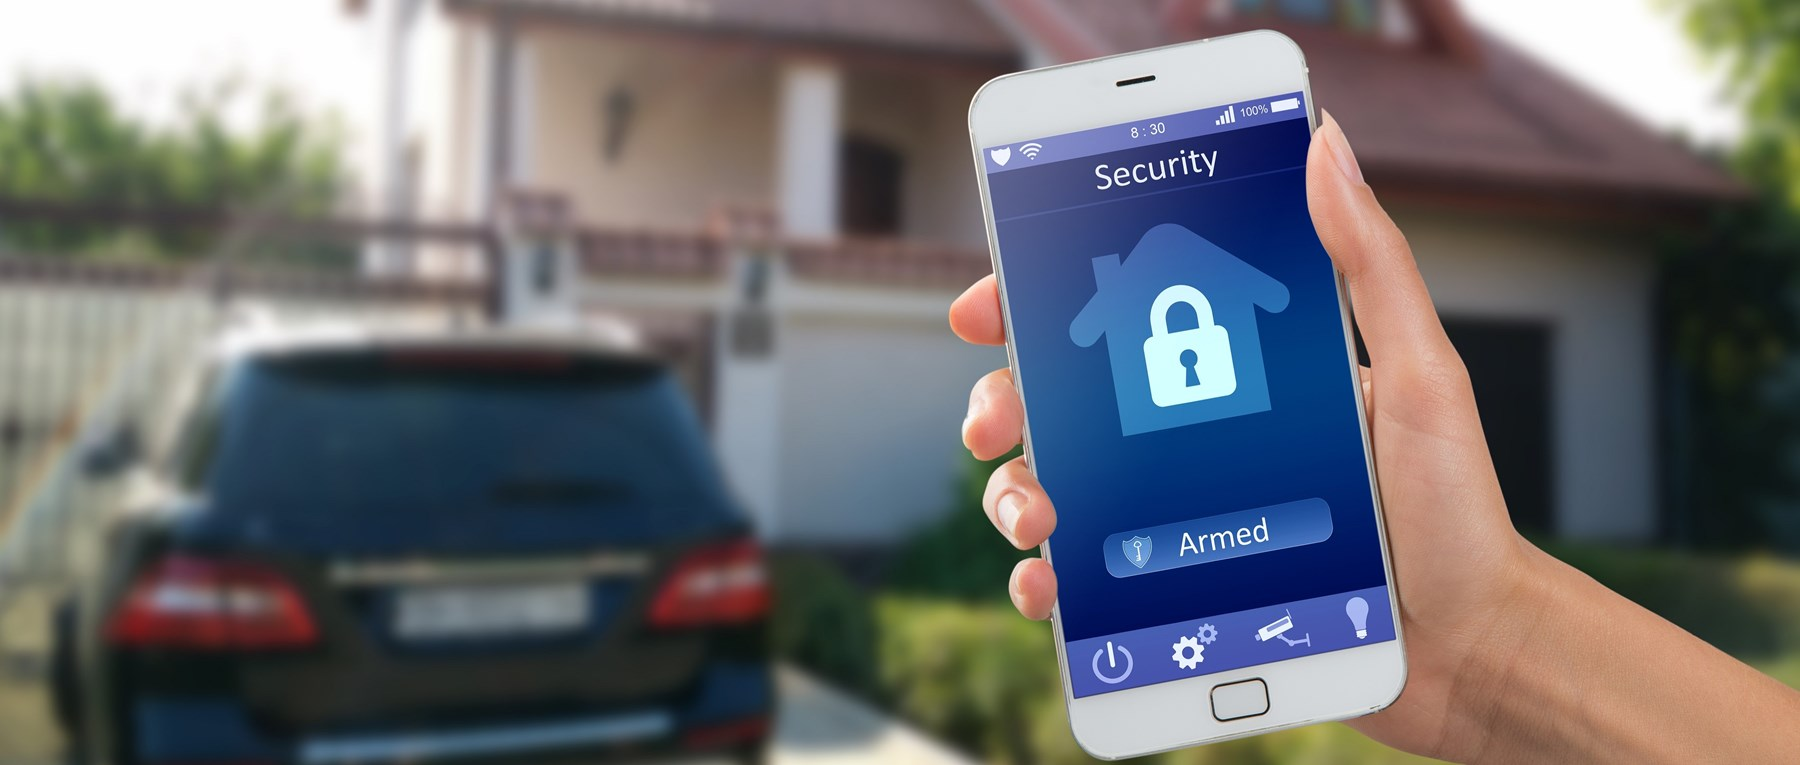 Mobile phone with home security system set up